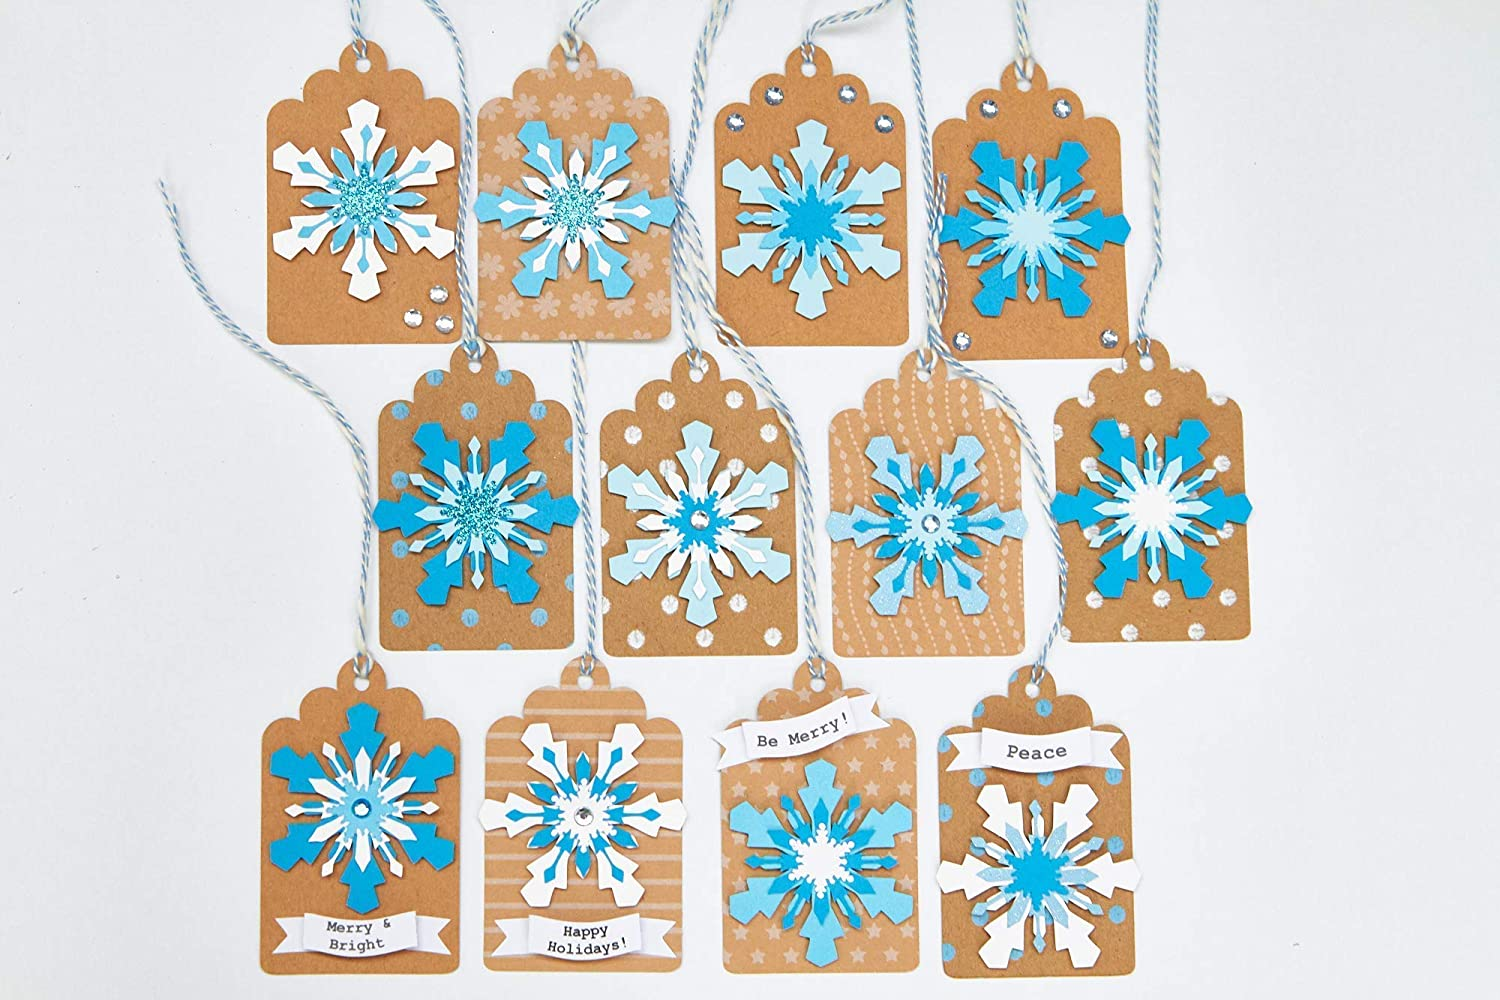 Max 42% OFF Clearance SALE! Limited time! Snowflake Holiday Gift tags Set 12 of